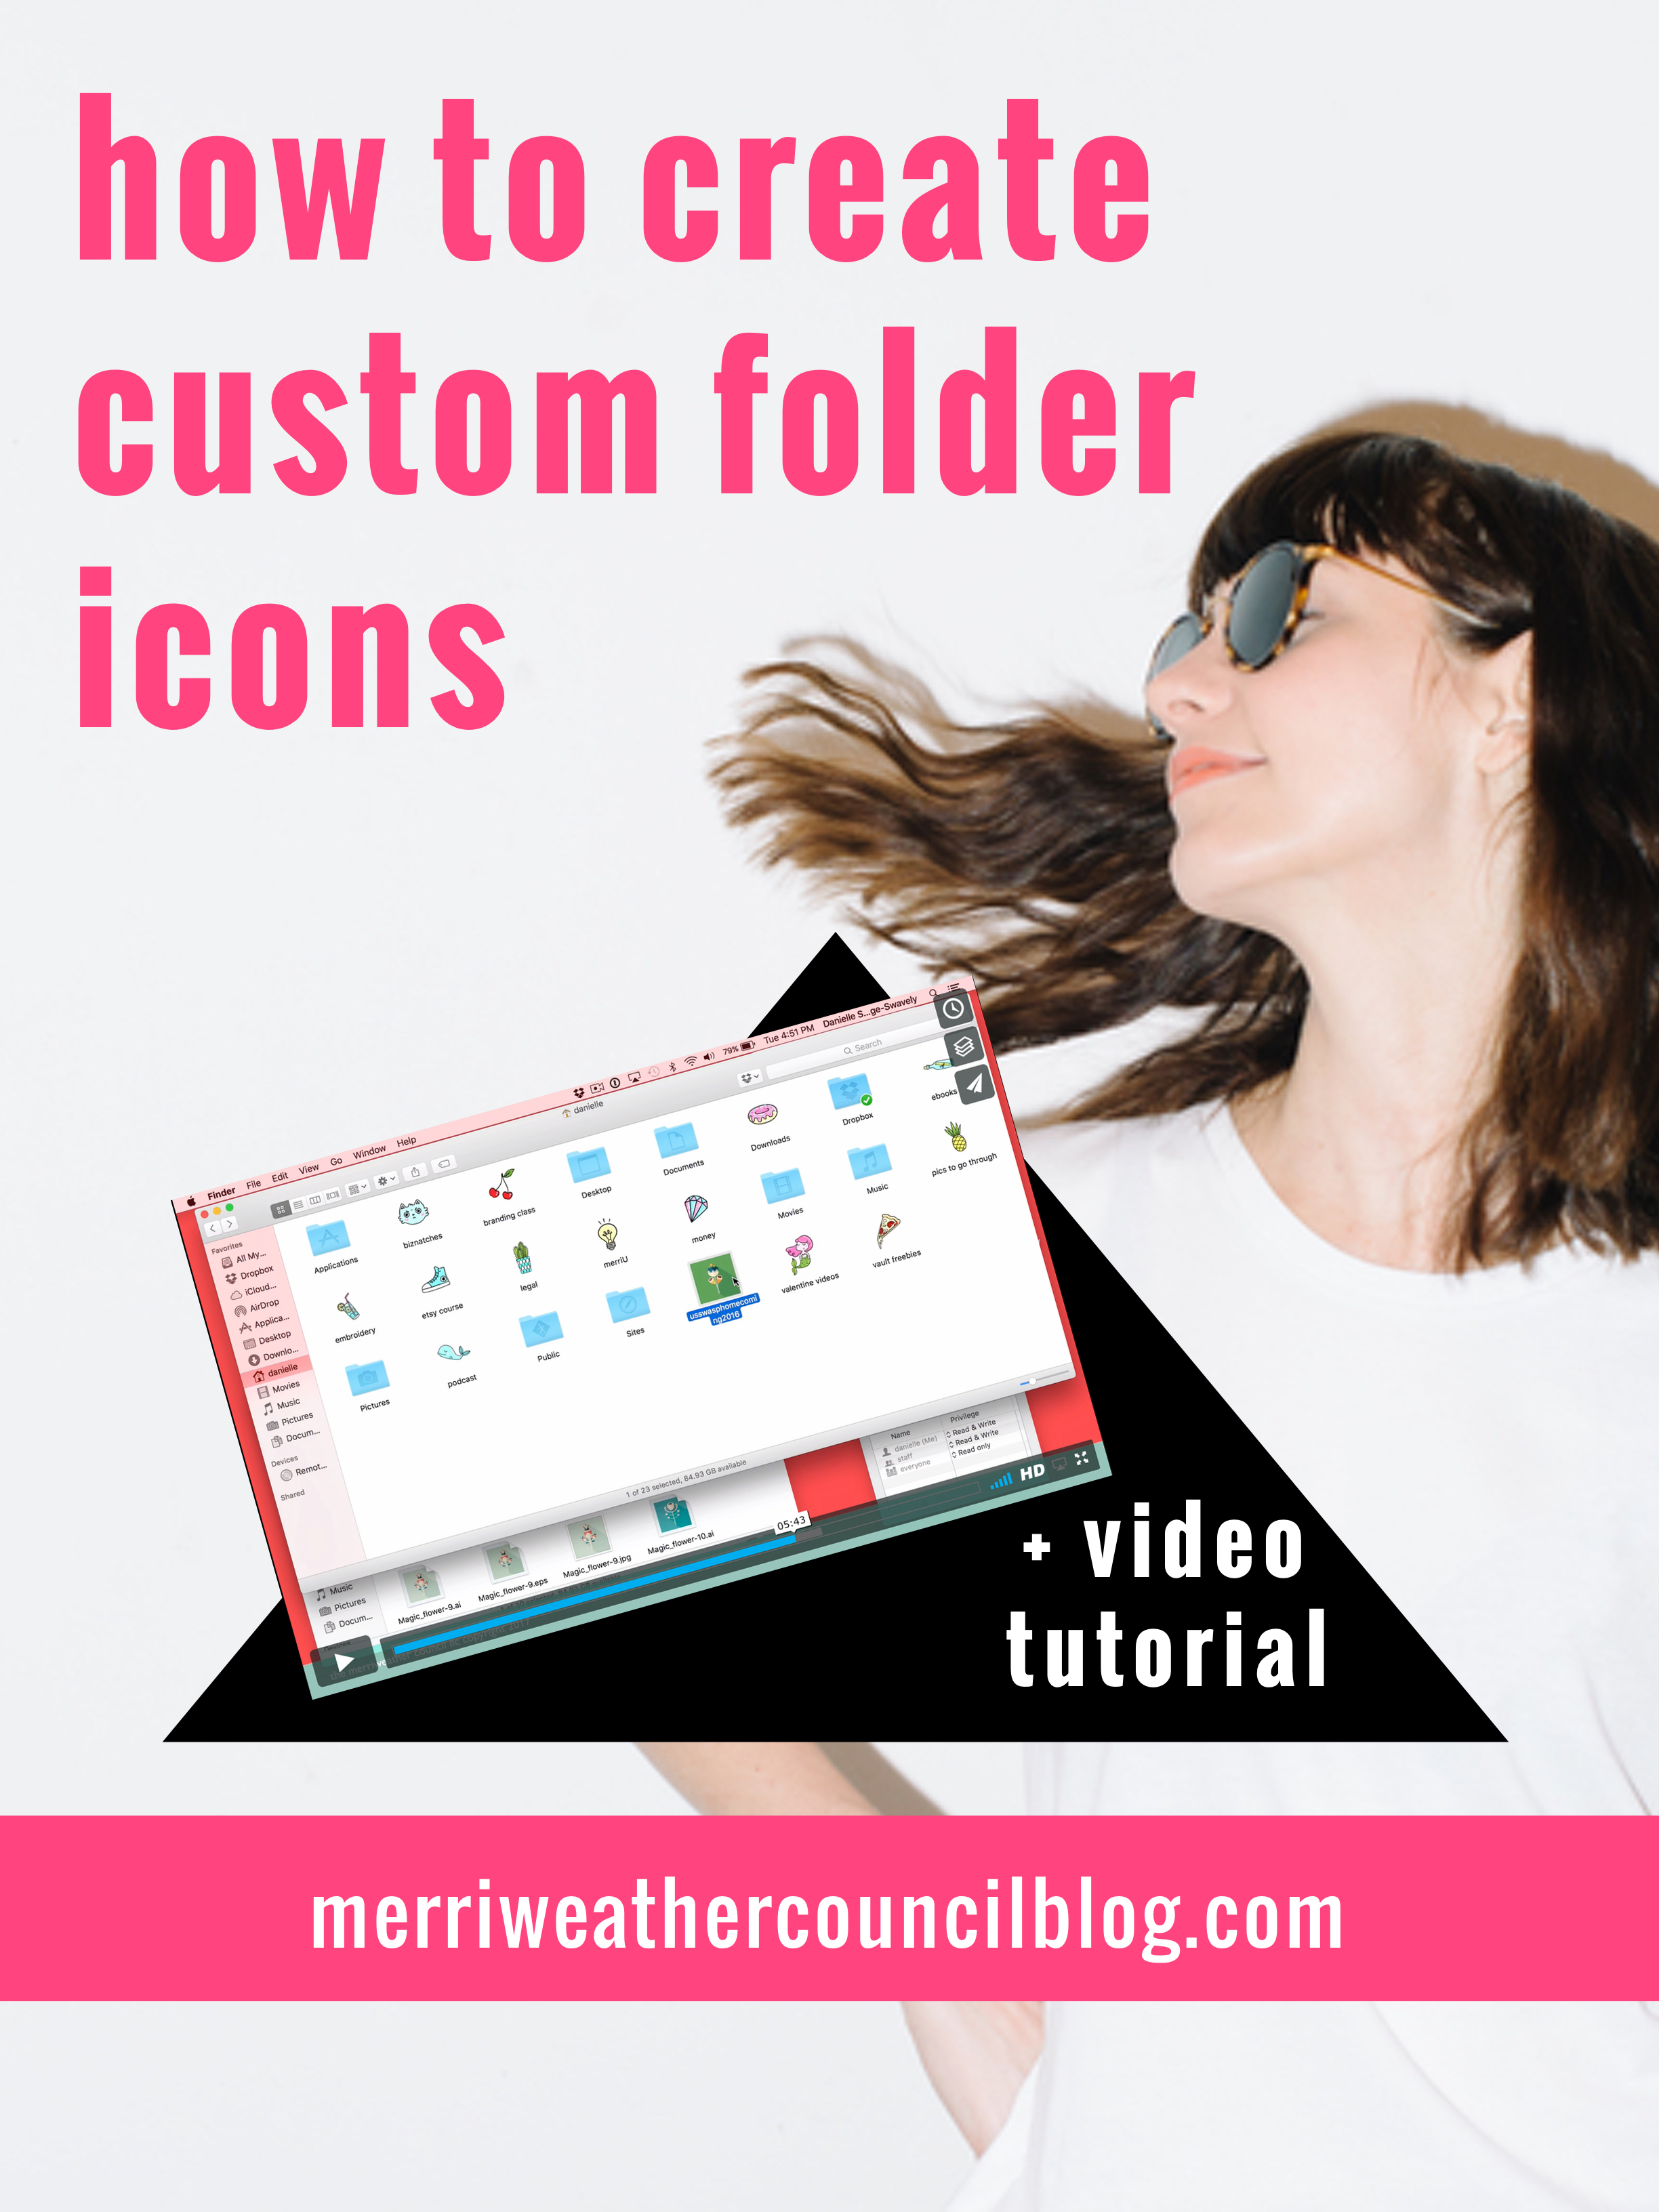 how to create custom folder icons | the merriweather council blog